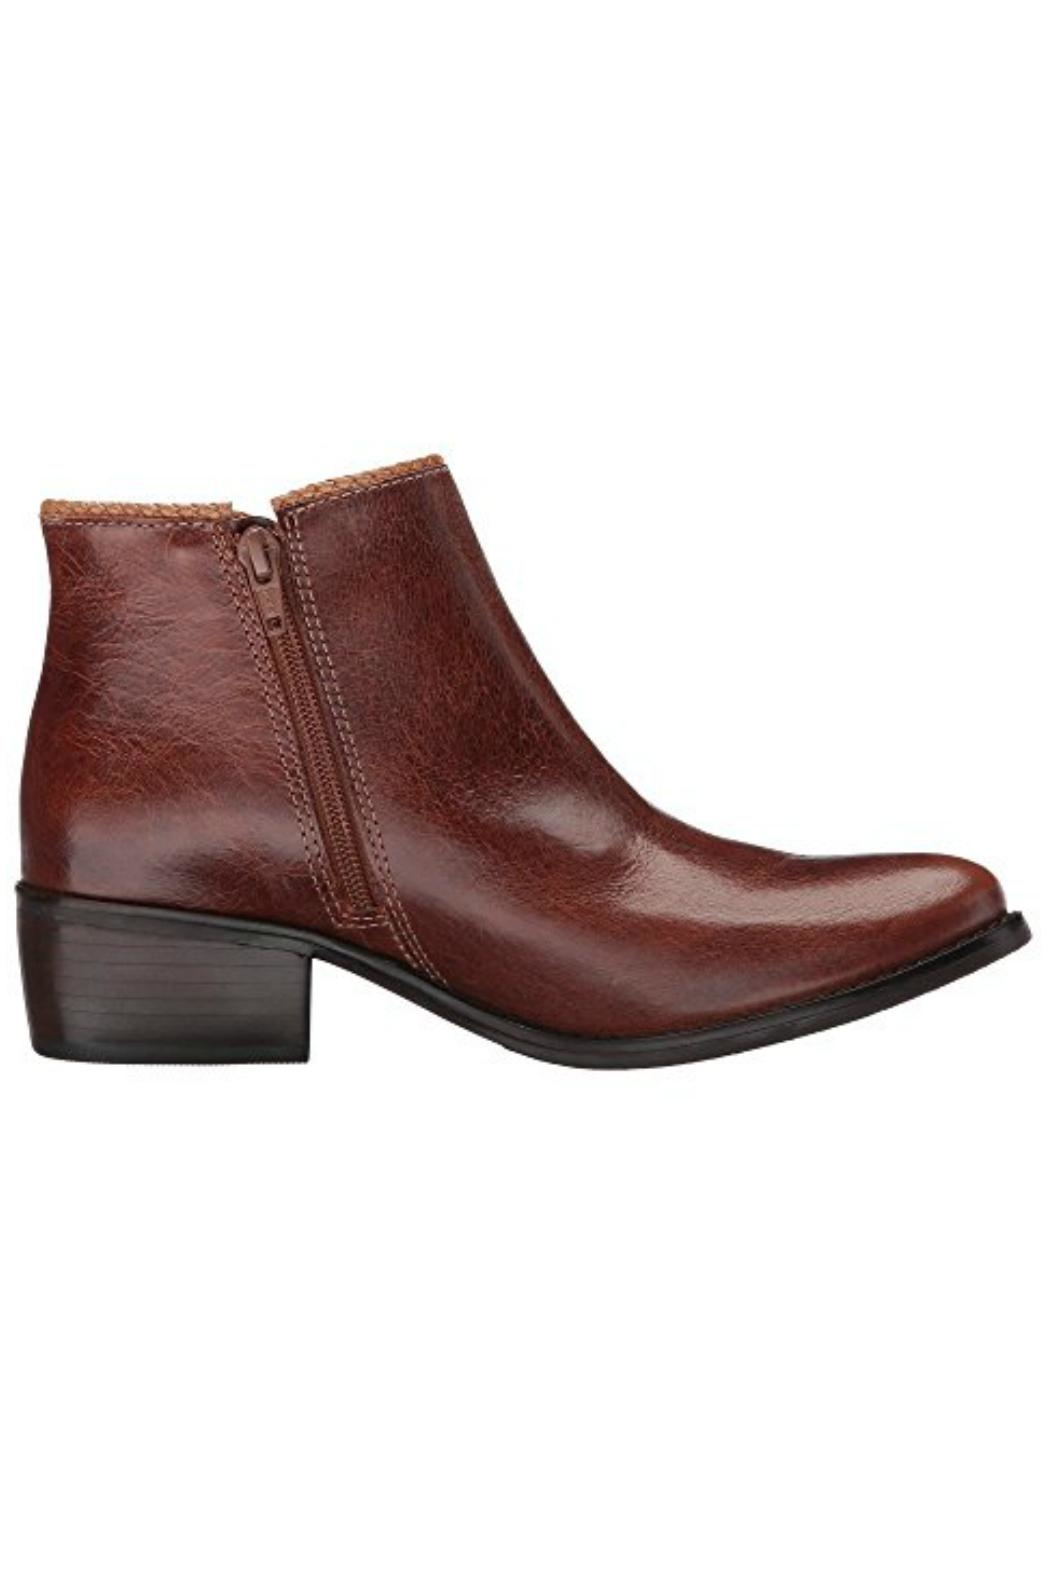 Matisse Italian Leather Boots - Front Full Image